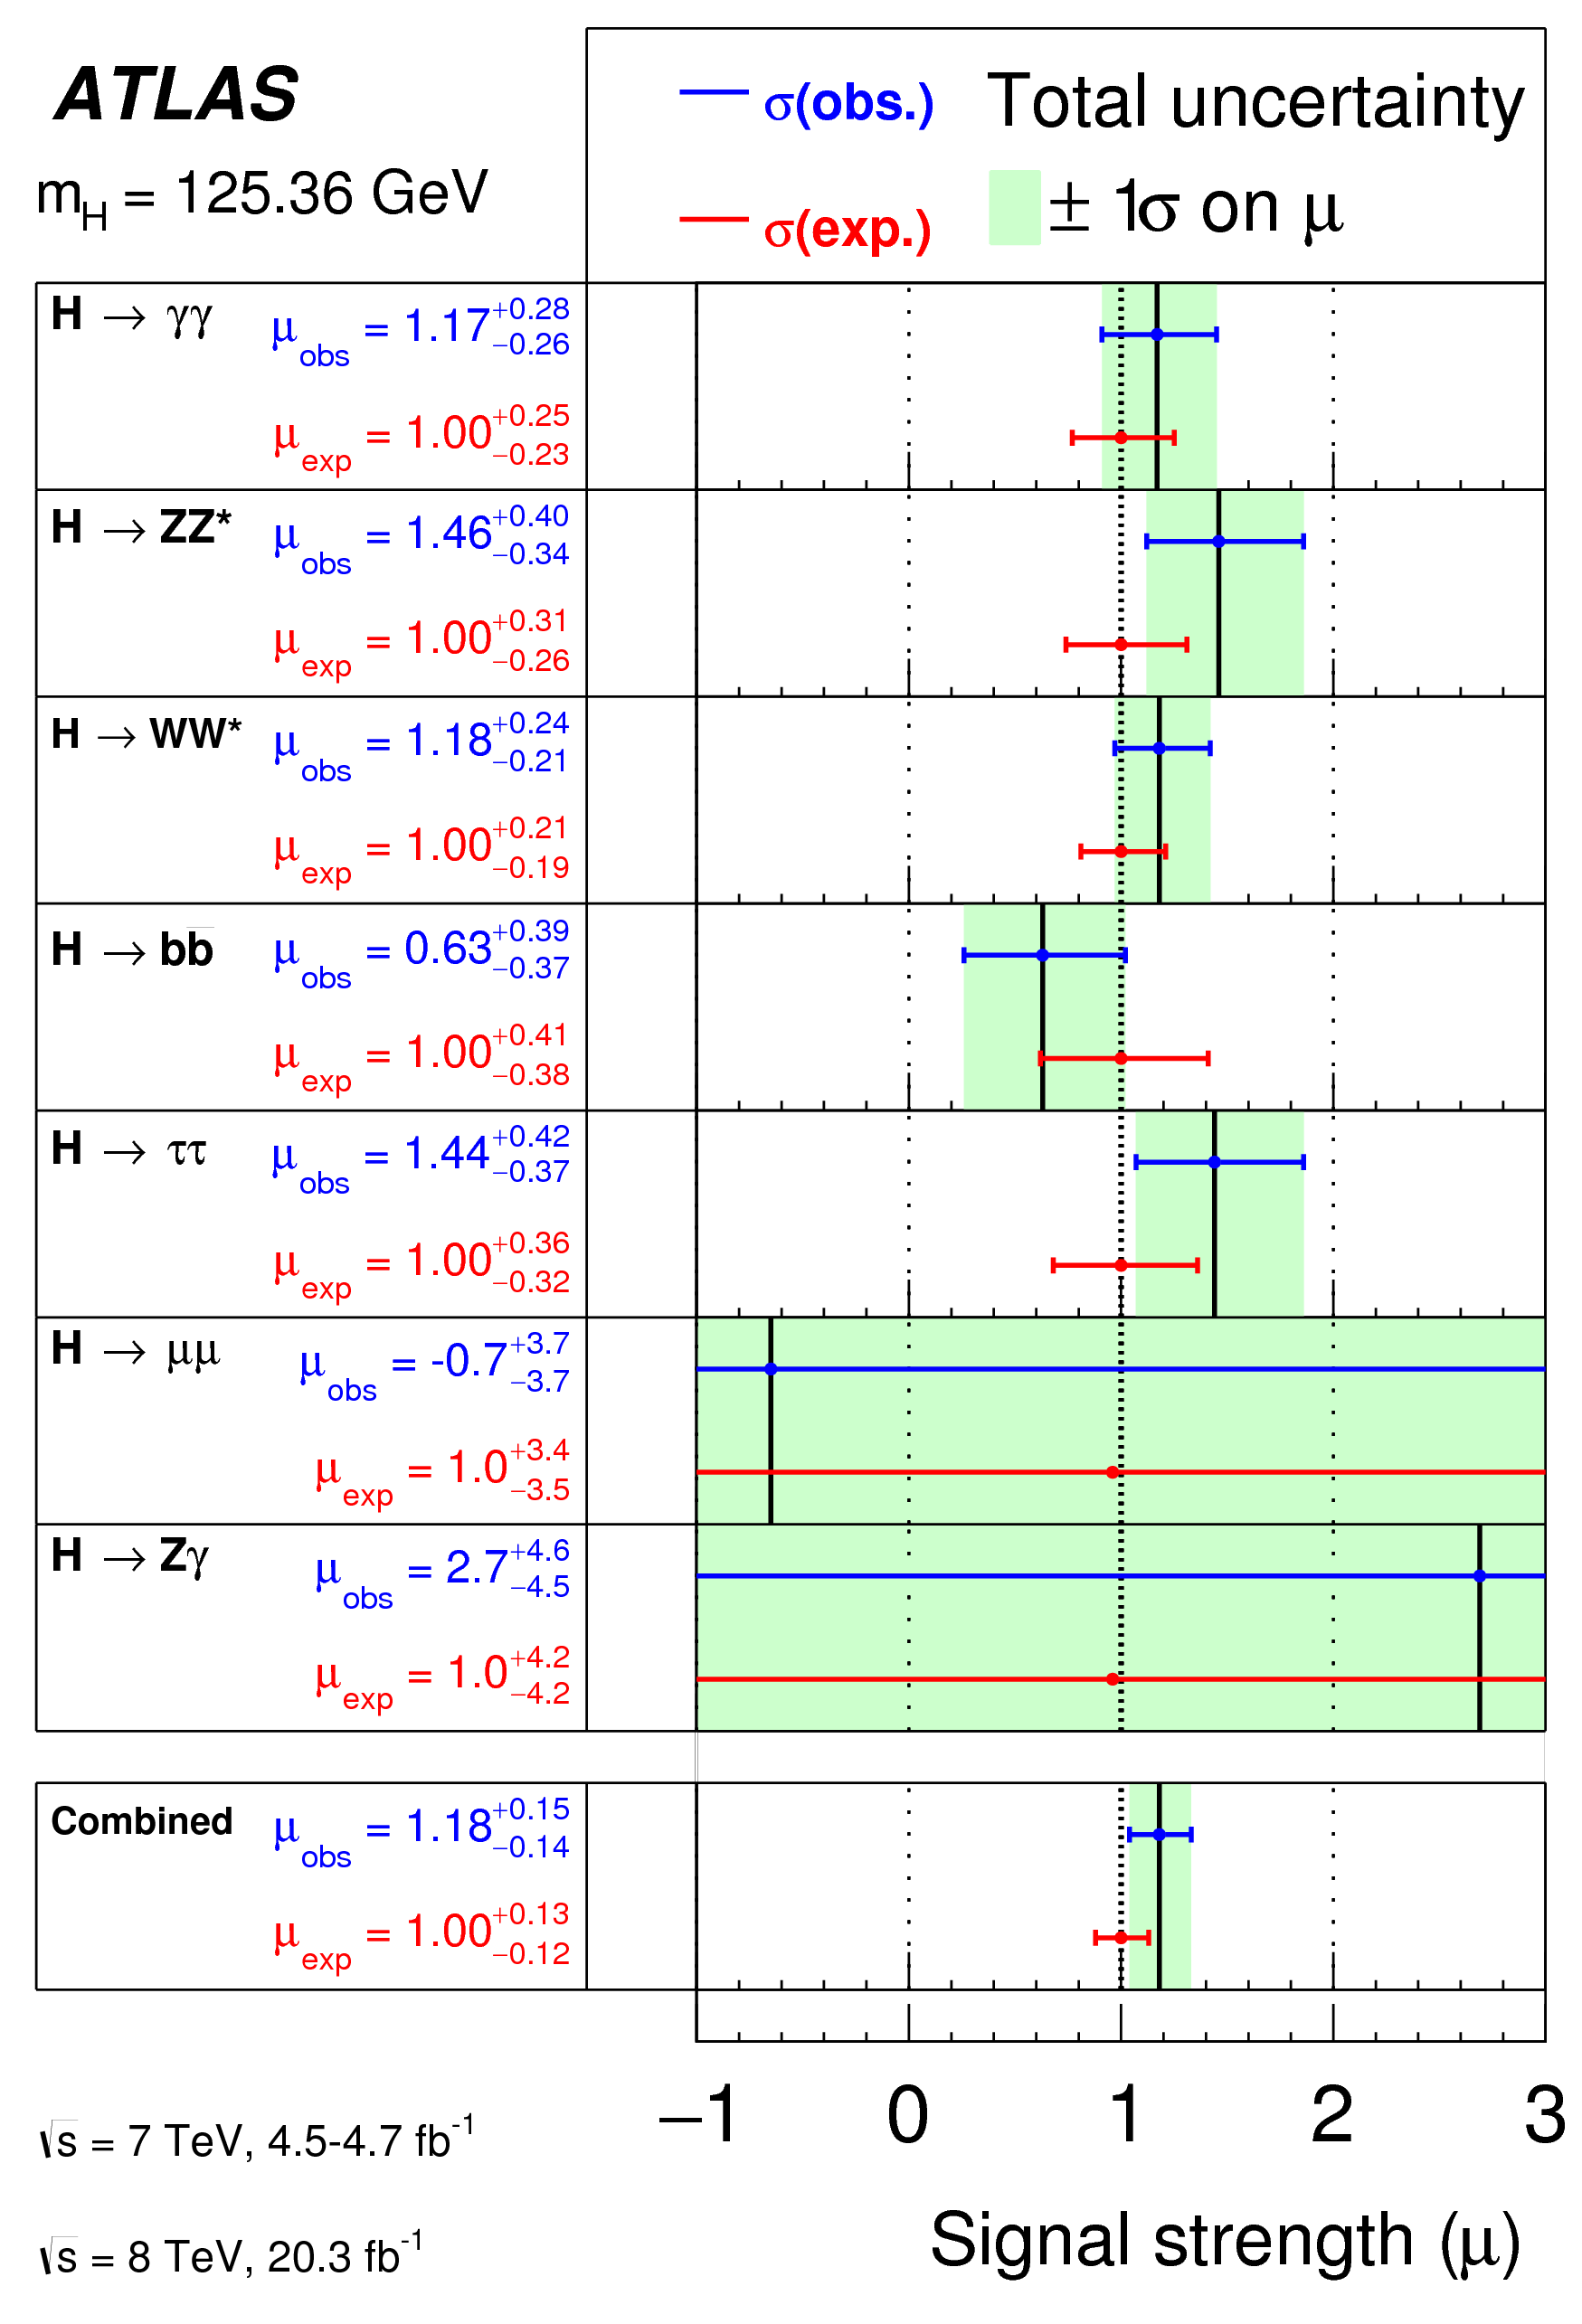 https://atlas.web.cern.ch/Atlas/GROUPS/PHYSICS/CombinedSummaryPlots/HIGGS/ATLAS_HIGGS3820_mu_Summary_simple/ATLAS_HIGGS3820_mu_Summary_simple.png